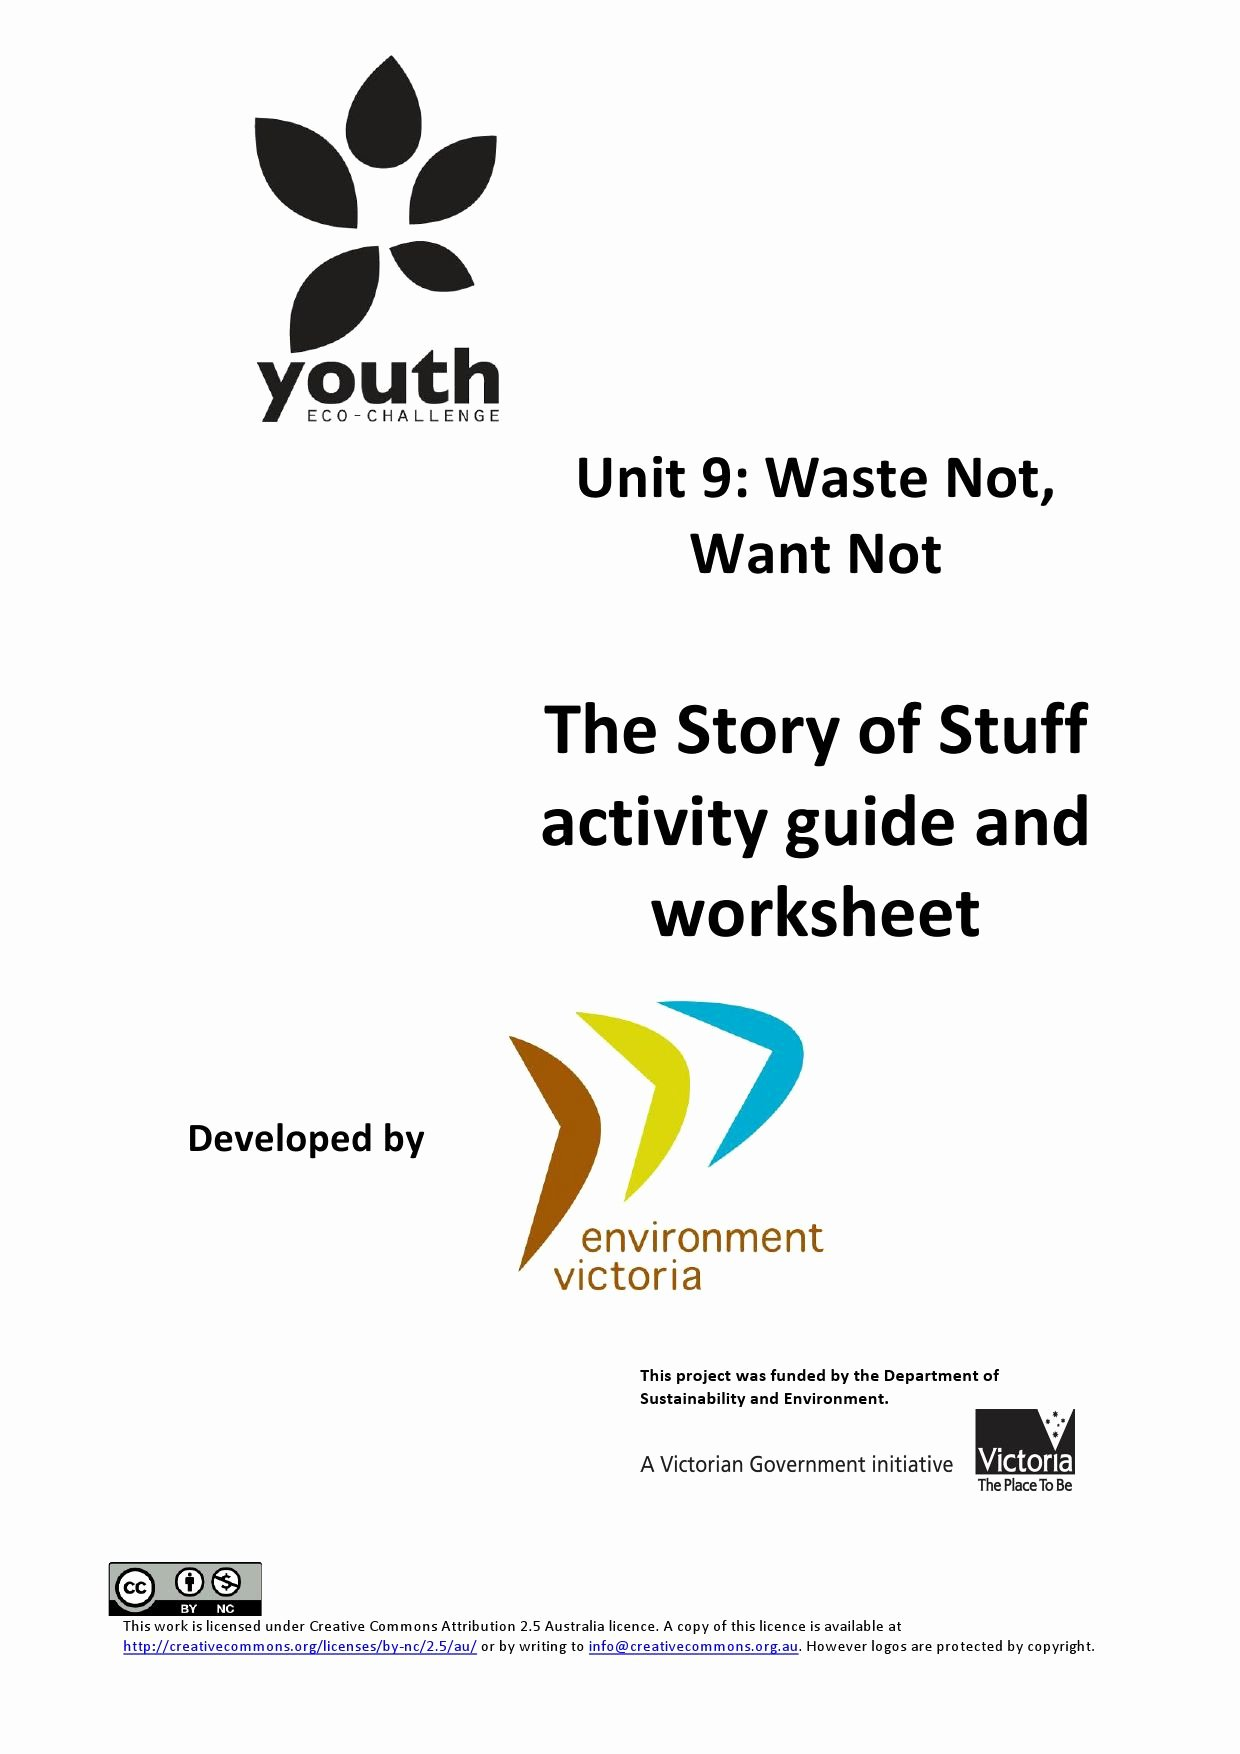 The Story Of Stuff Worksheet Best Of Vcal Unit 9 Story Of Stuff Activity Guide and Worksheet